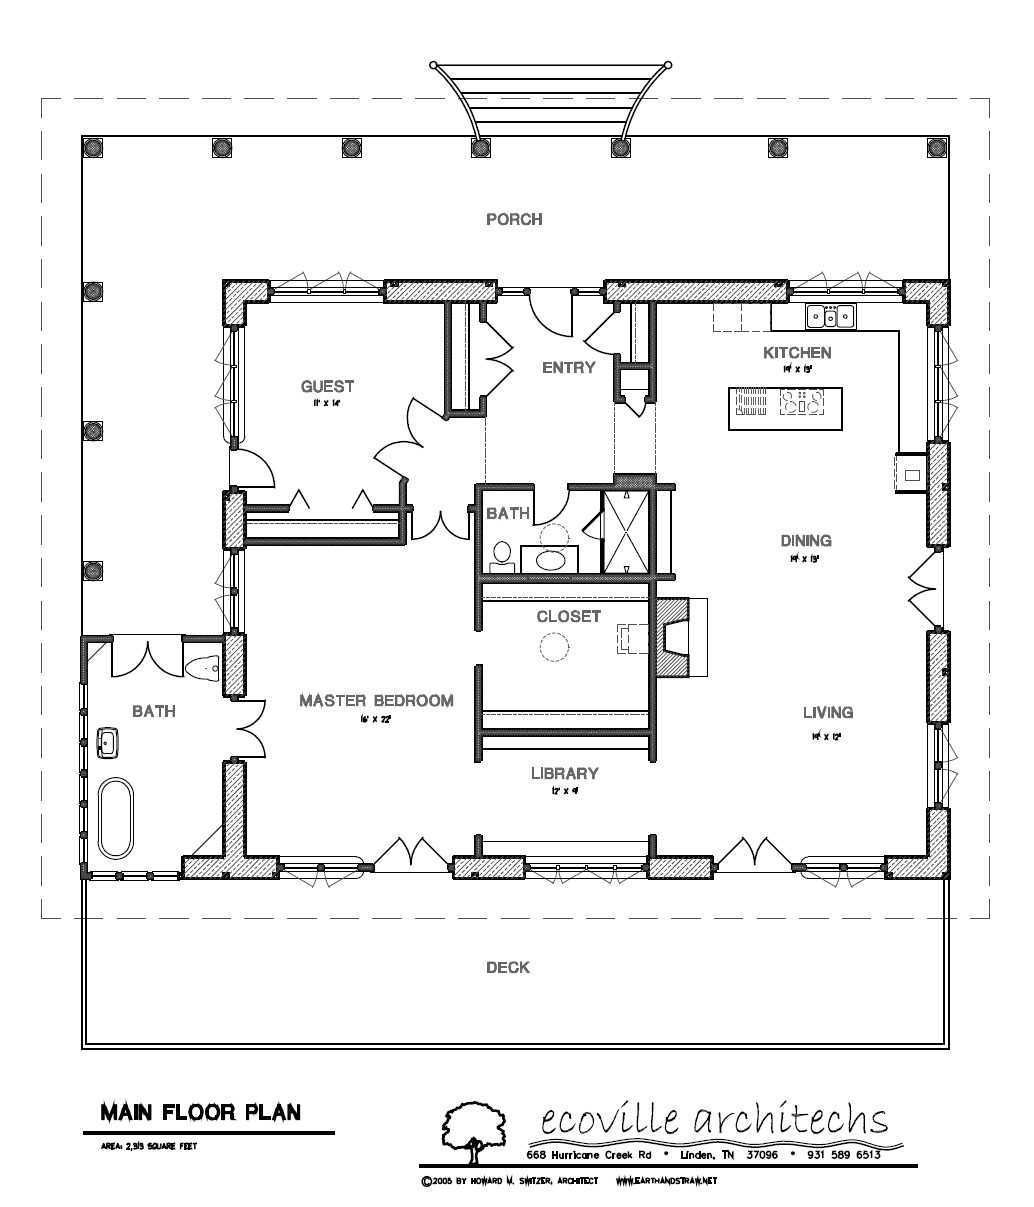 two bedroom house plans spacious porch large bathroom spacious deck